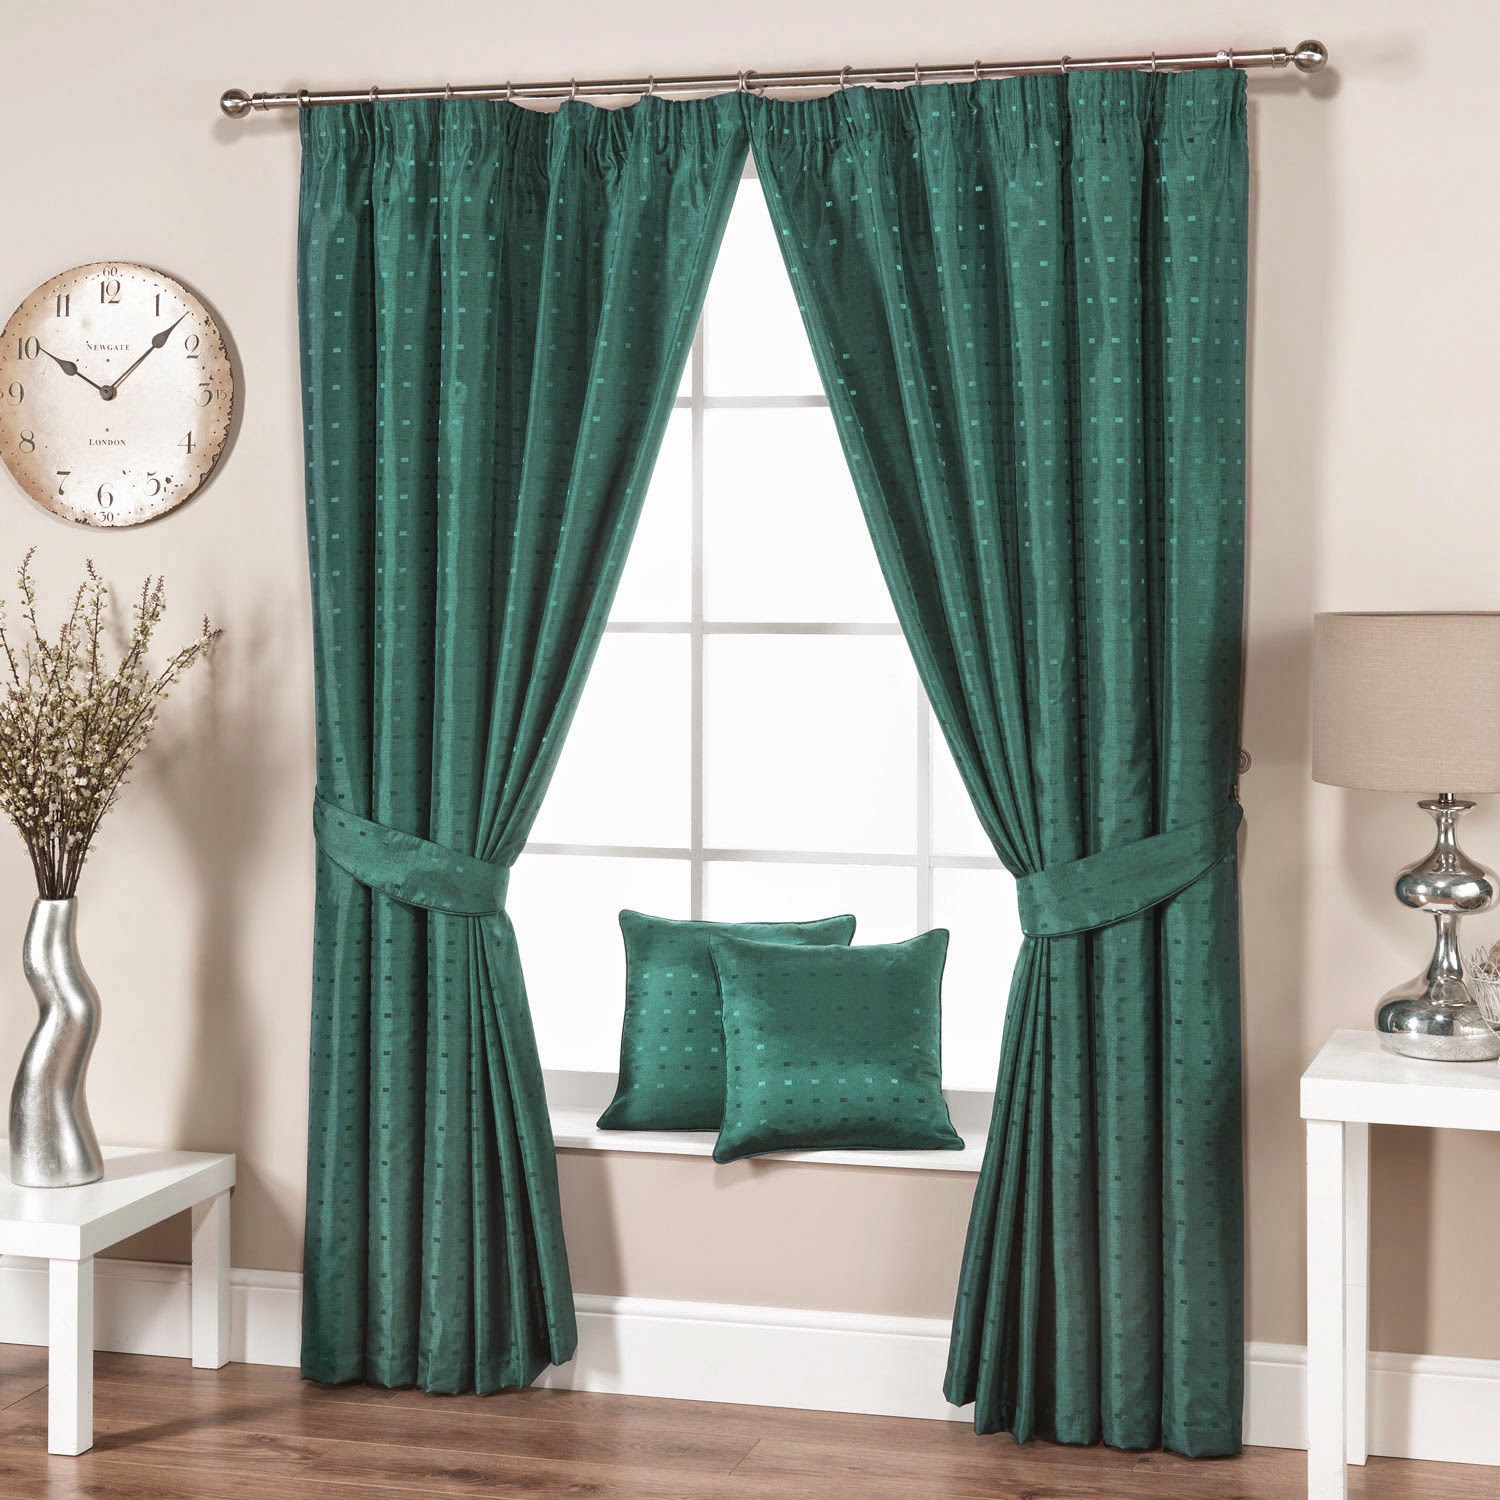 Green living room curtains for modern interior - Living room curtains photos ...